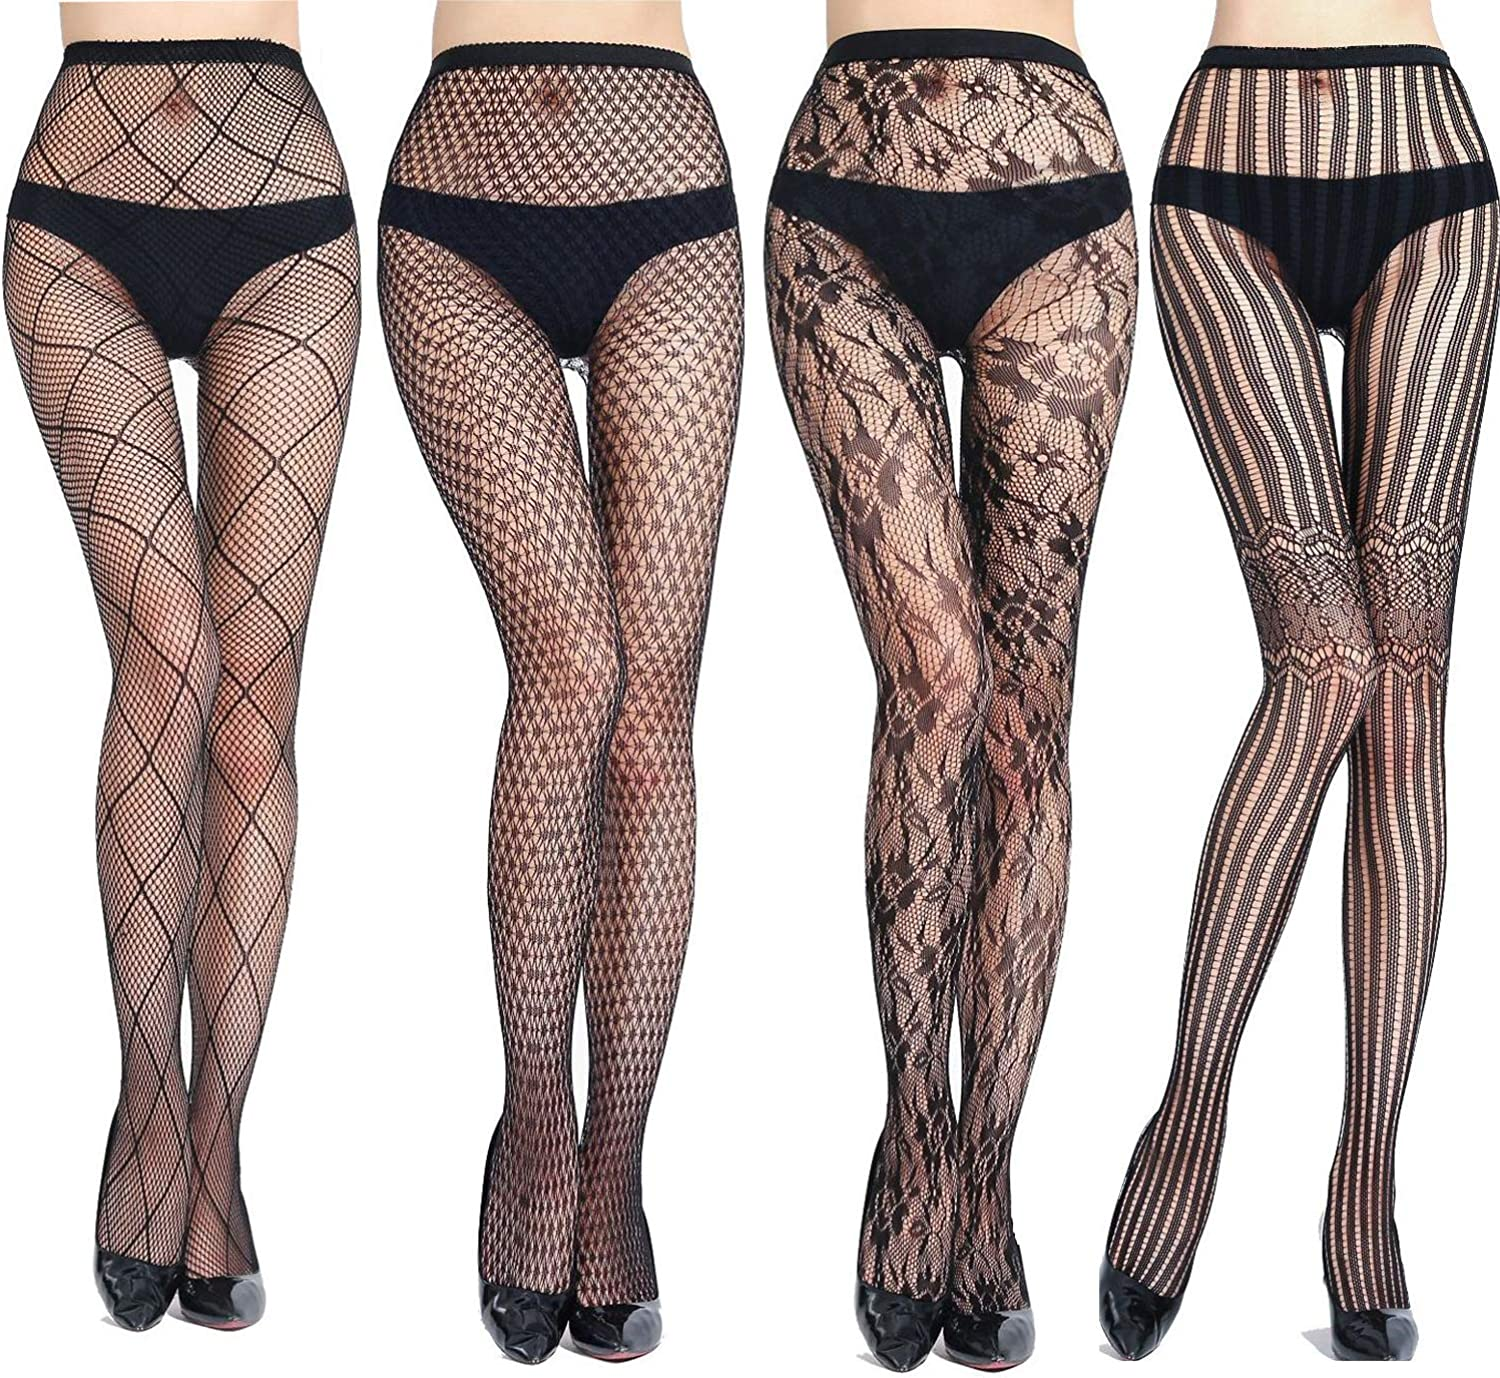 Womens Sexy Fishnet Pantyhose 4 PK Black Lace Stockings Mesh Tights Hosiery (Pack 4)